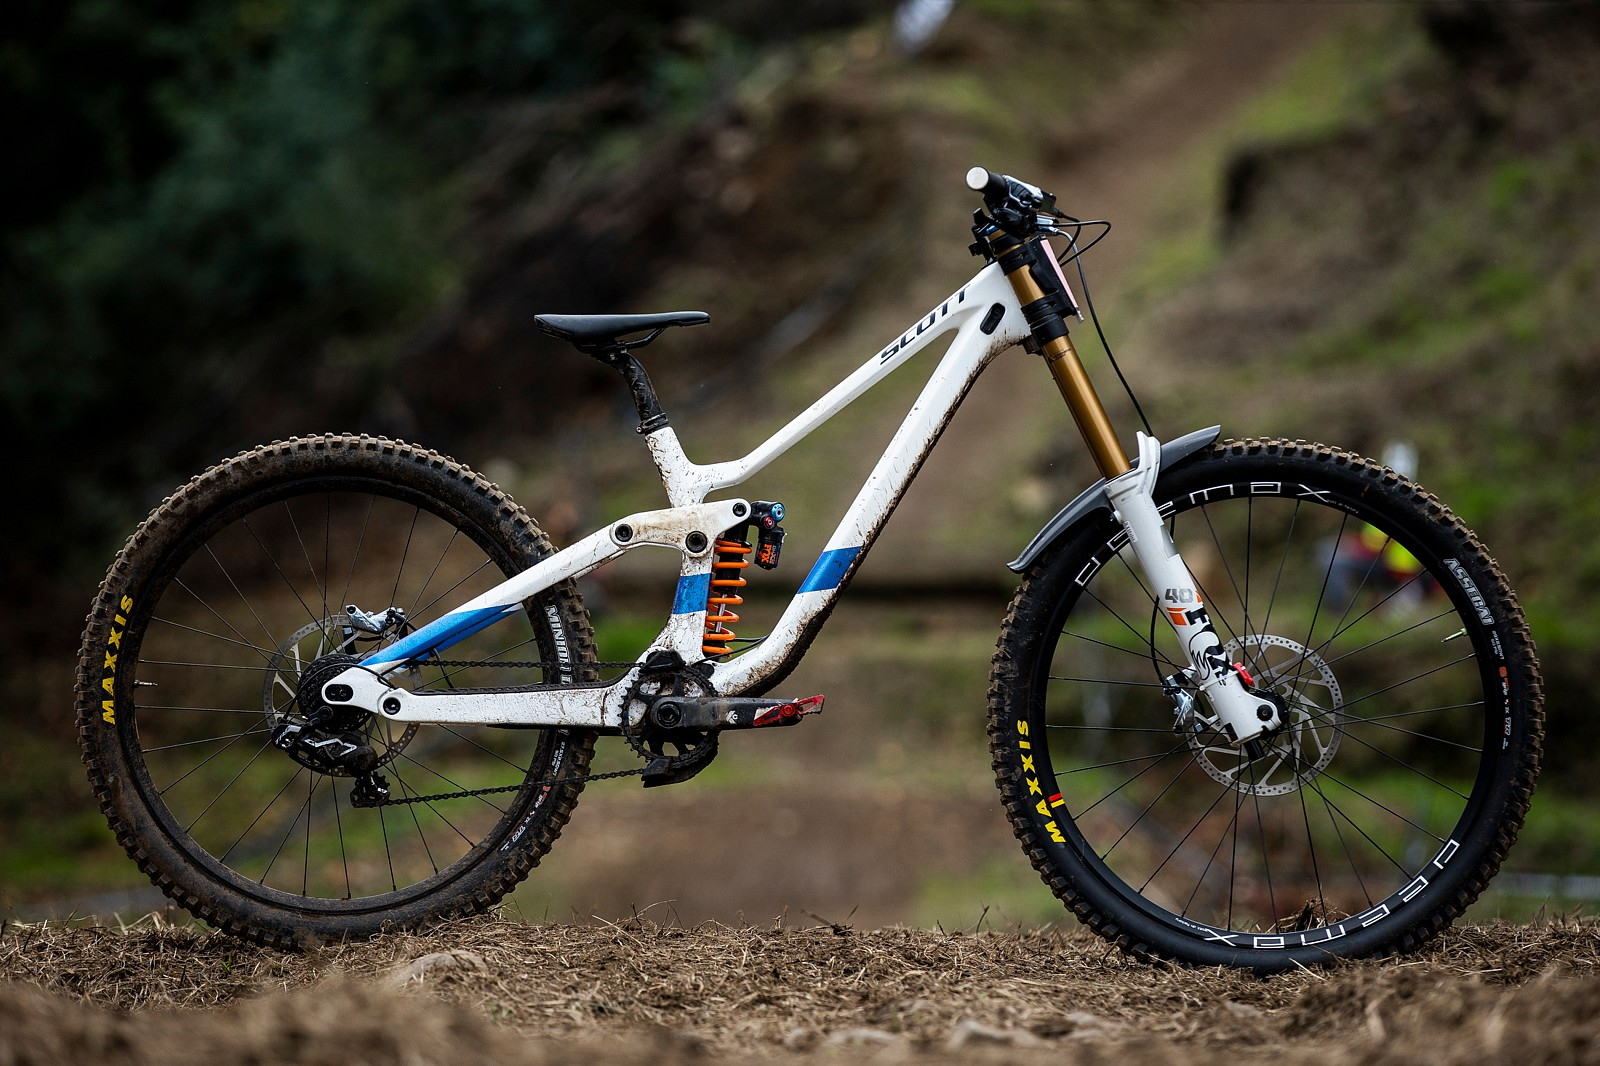 WINNING BIKE: Marine Cabirou's Scott Gambler Tuned - WINNING BIKE: Marine Cabirou's Scott Gambler - Mountain Biking Pictures - Vital MTB